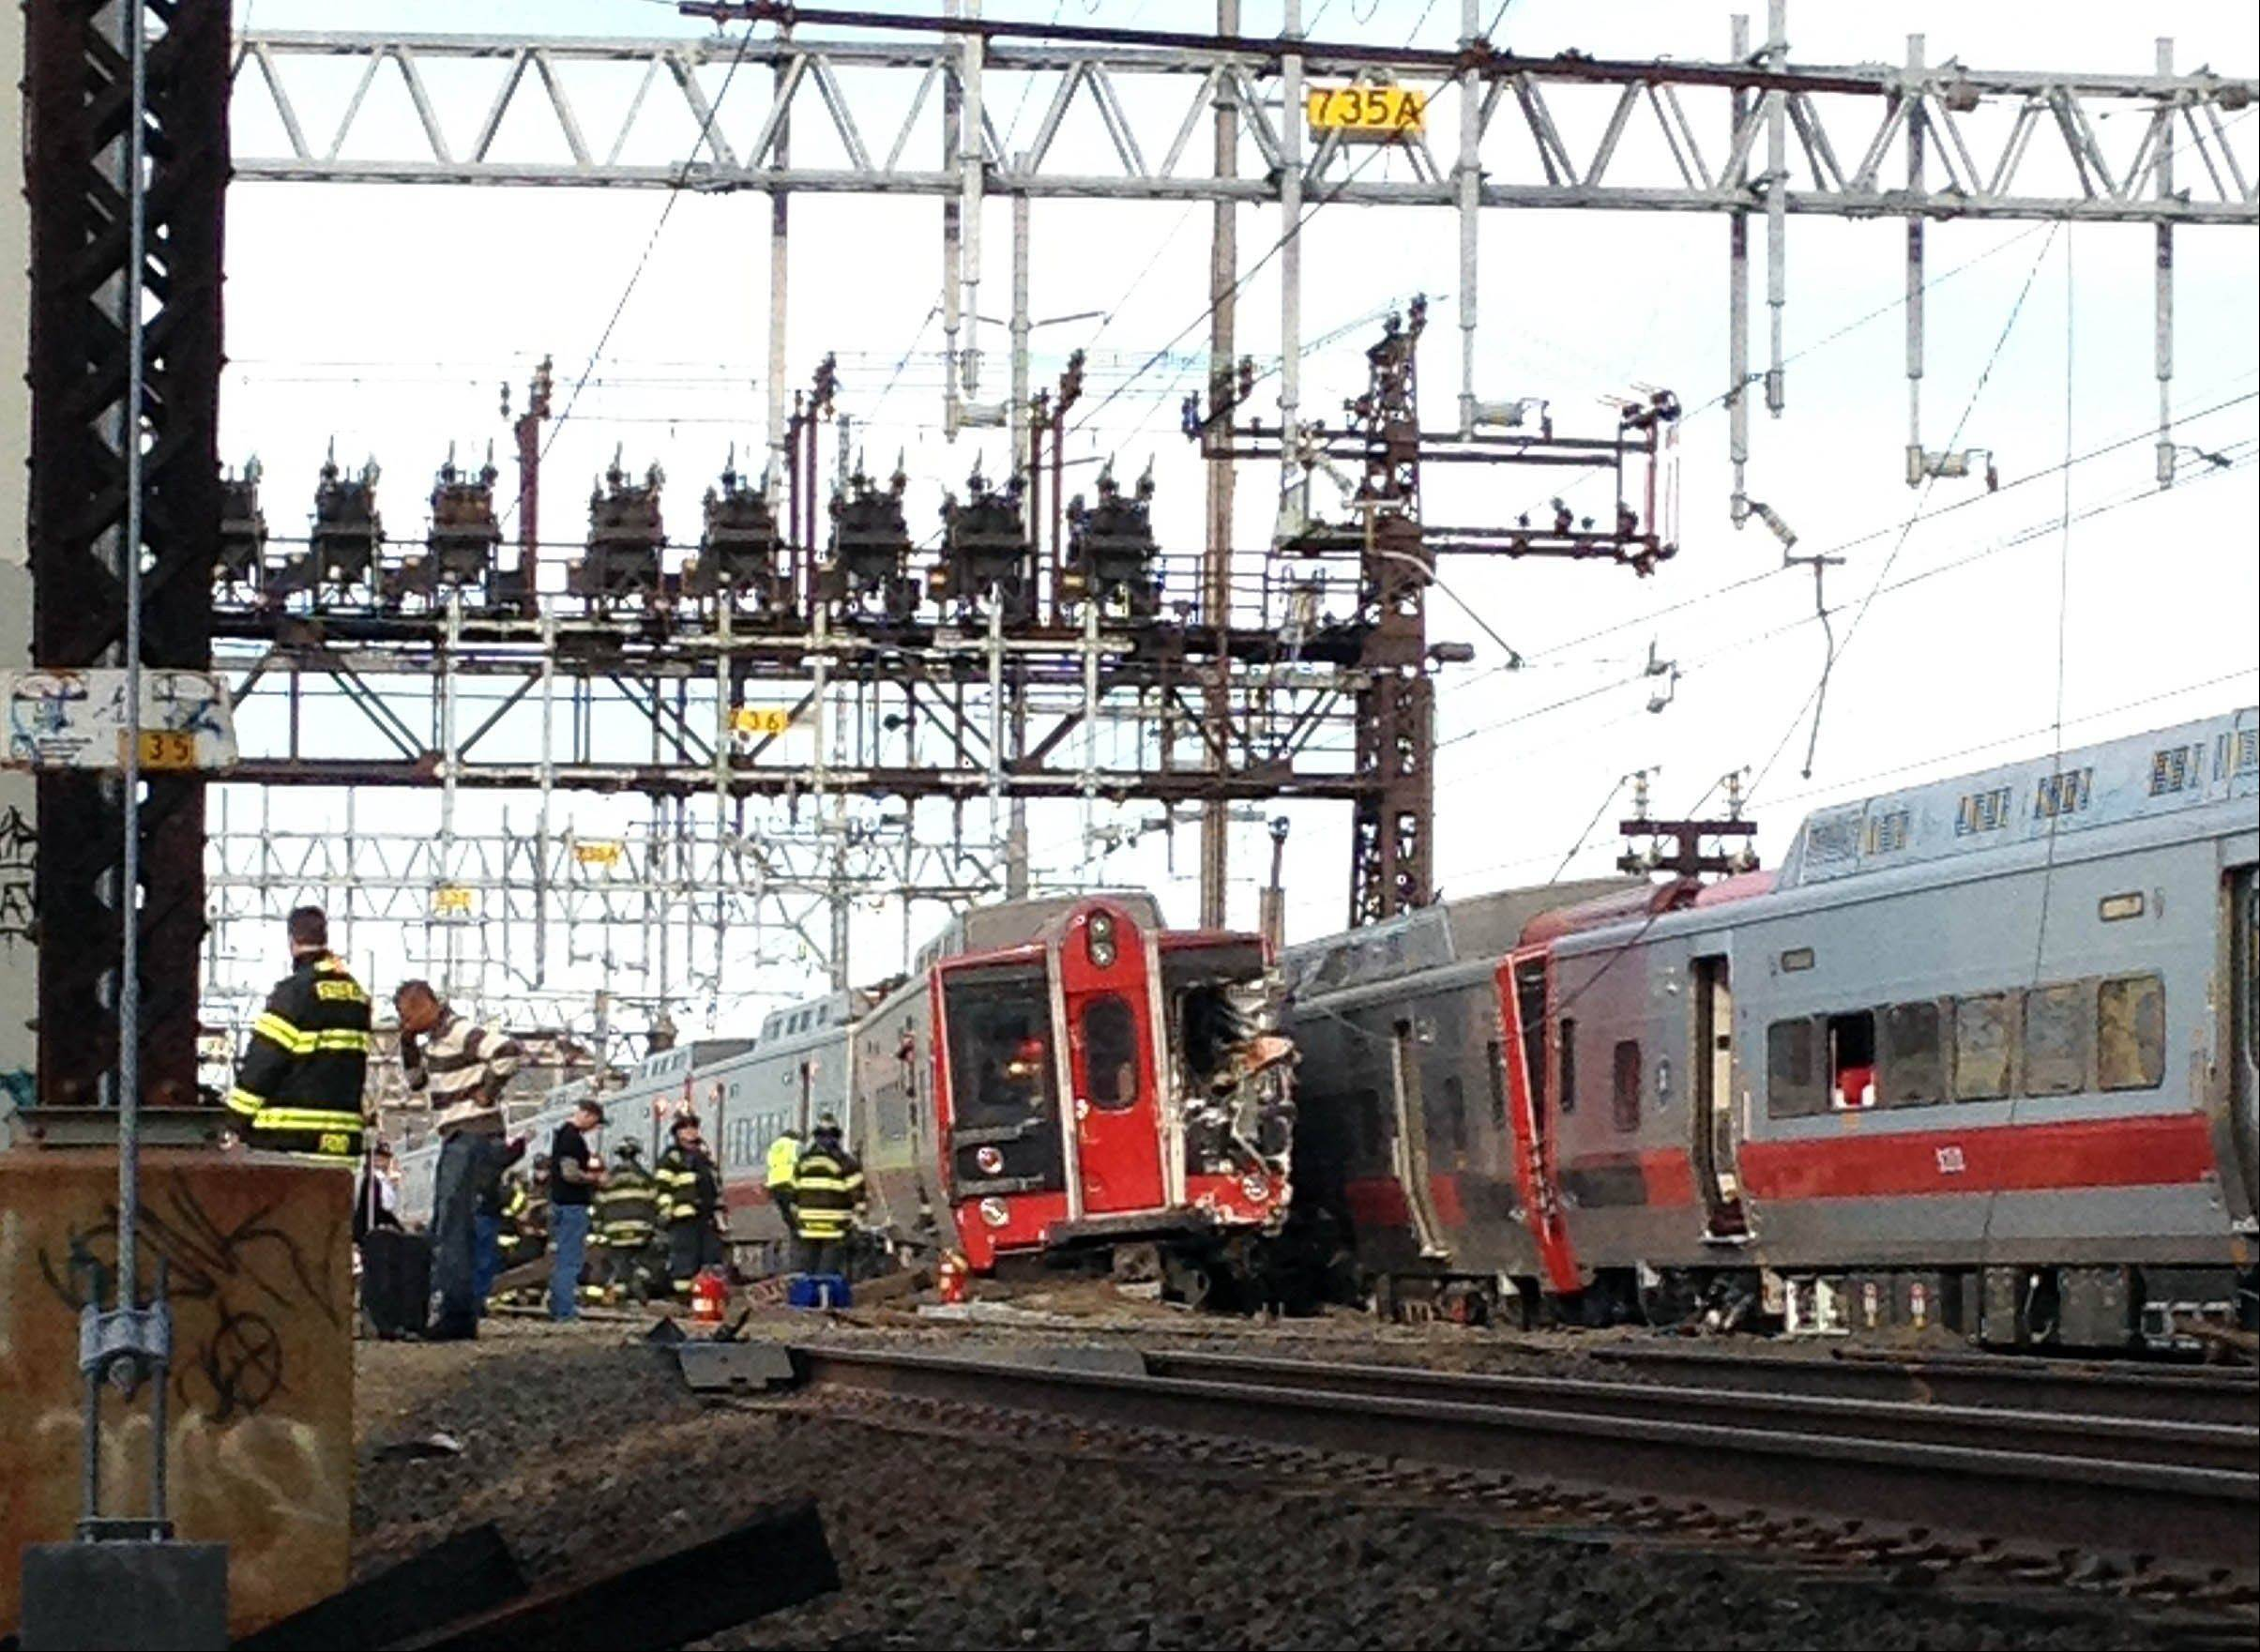 Emergency workers arrive at the scene Friday of a train collision in Fairfield, Conn.